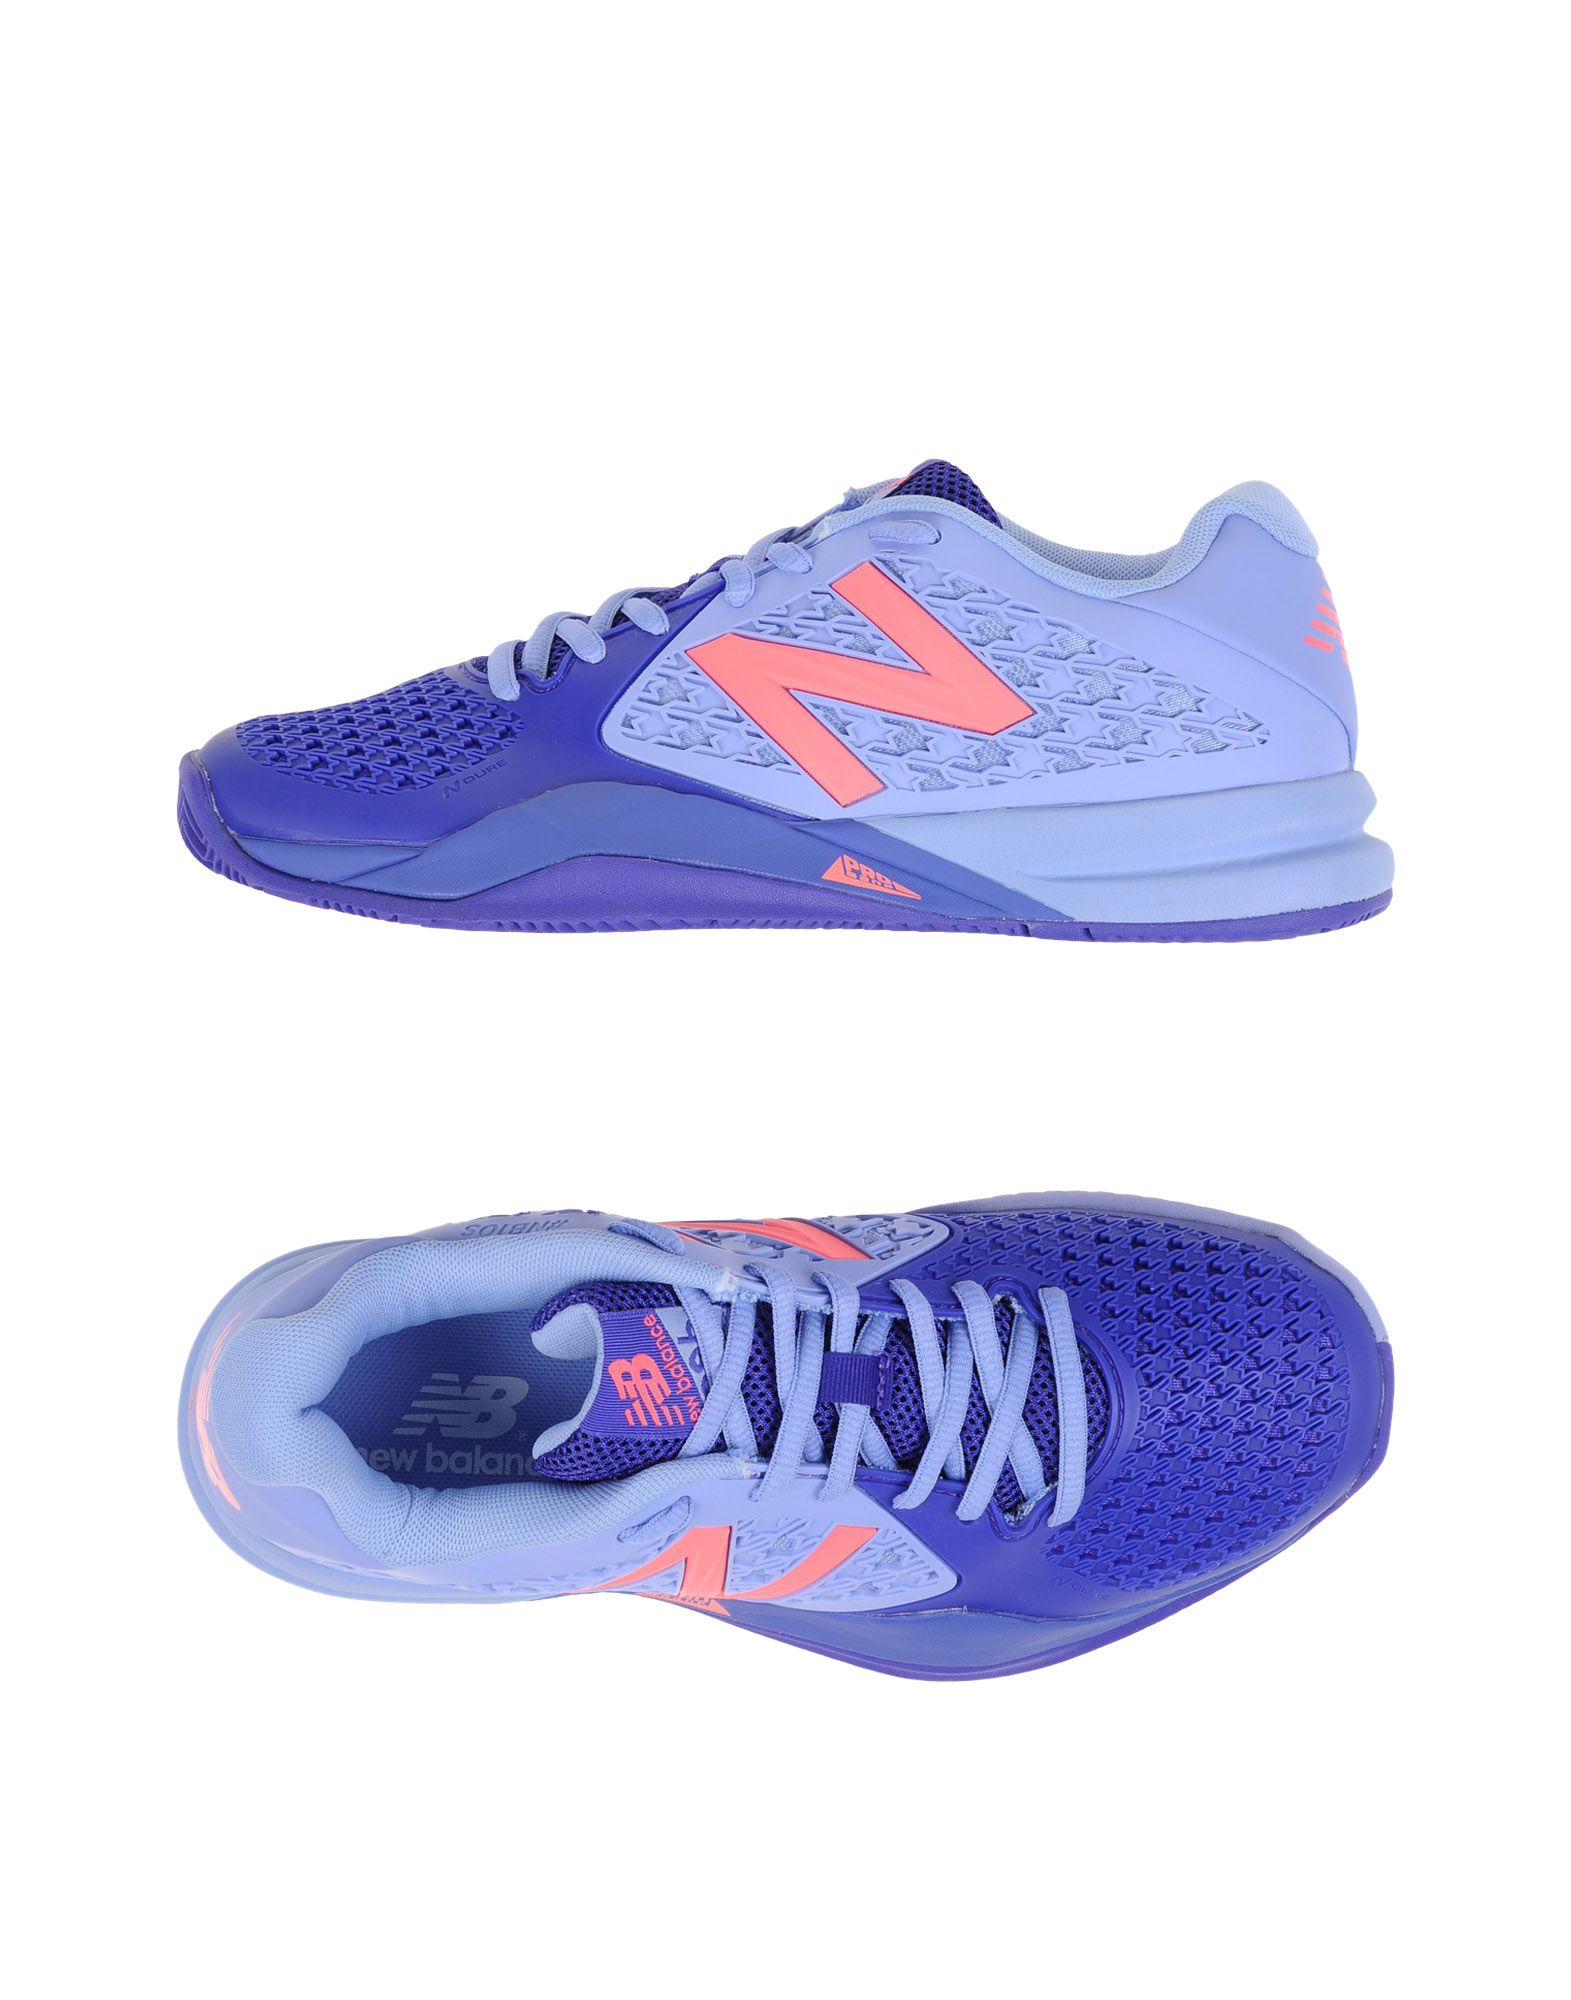 New Balance 996 996 996 V2 Lightweight - Sneakers - Women New Balance Sneakers online on  Canada - 11103963CX 574be3